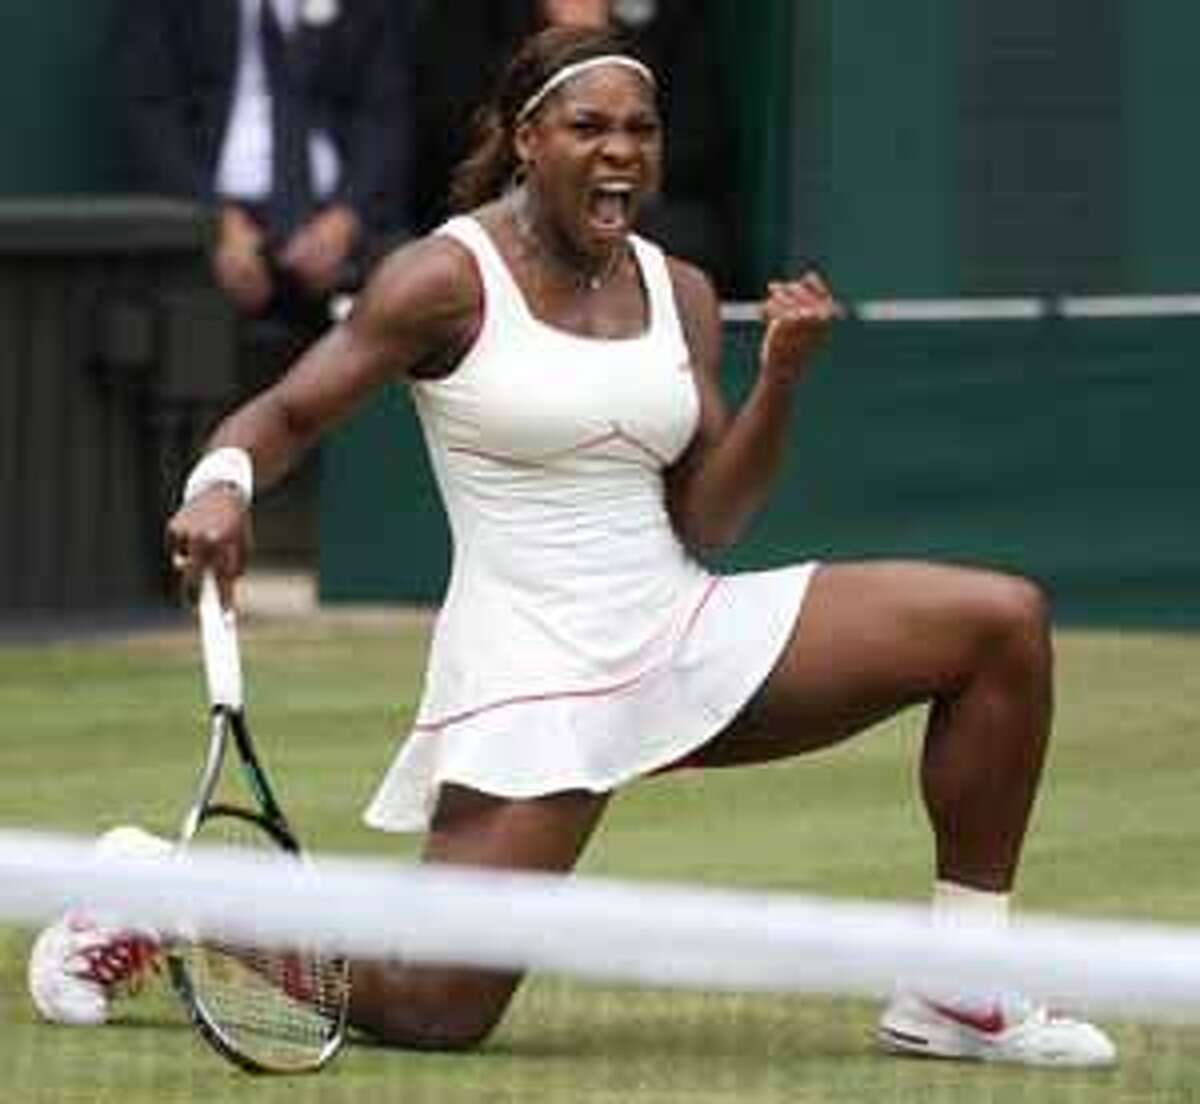 Defending champion Serena Williams reacts as she wins a point from Vera Zonareva, during the women's singles final on the Centre Court at the All England Lawn Tennis Championships at Wimbledon, Saturday, July 3, 2010. (AP Photo/Jon Super)